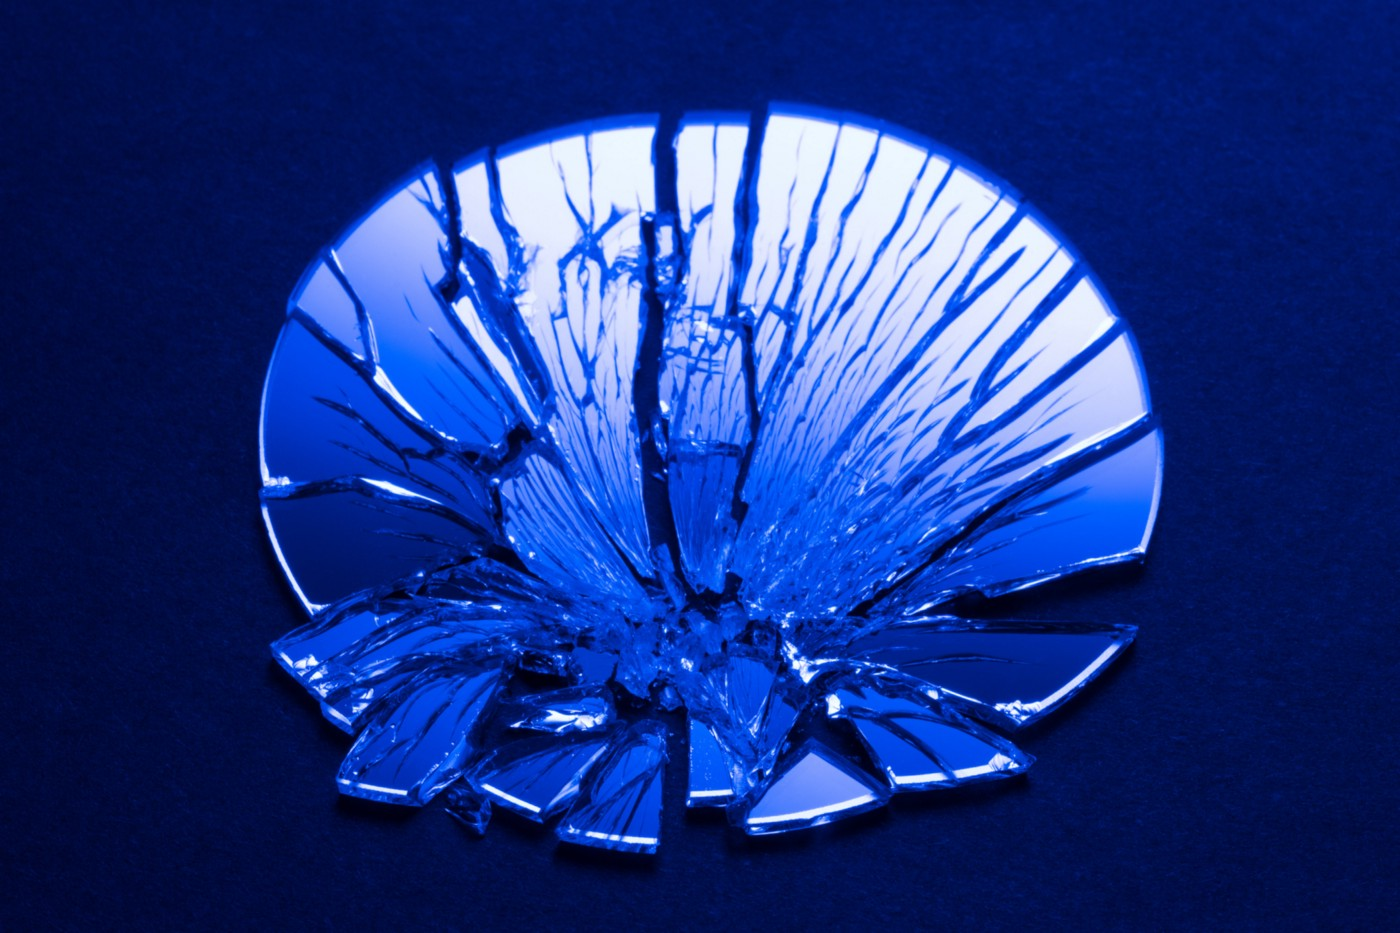 A blue-tinted photo of a shattered mirror.